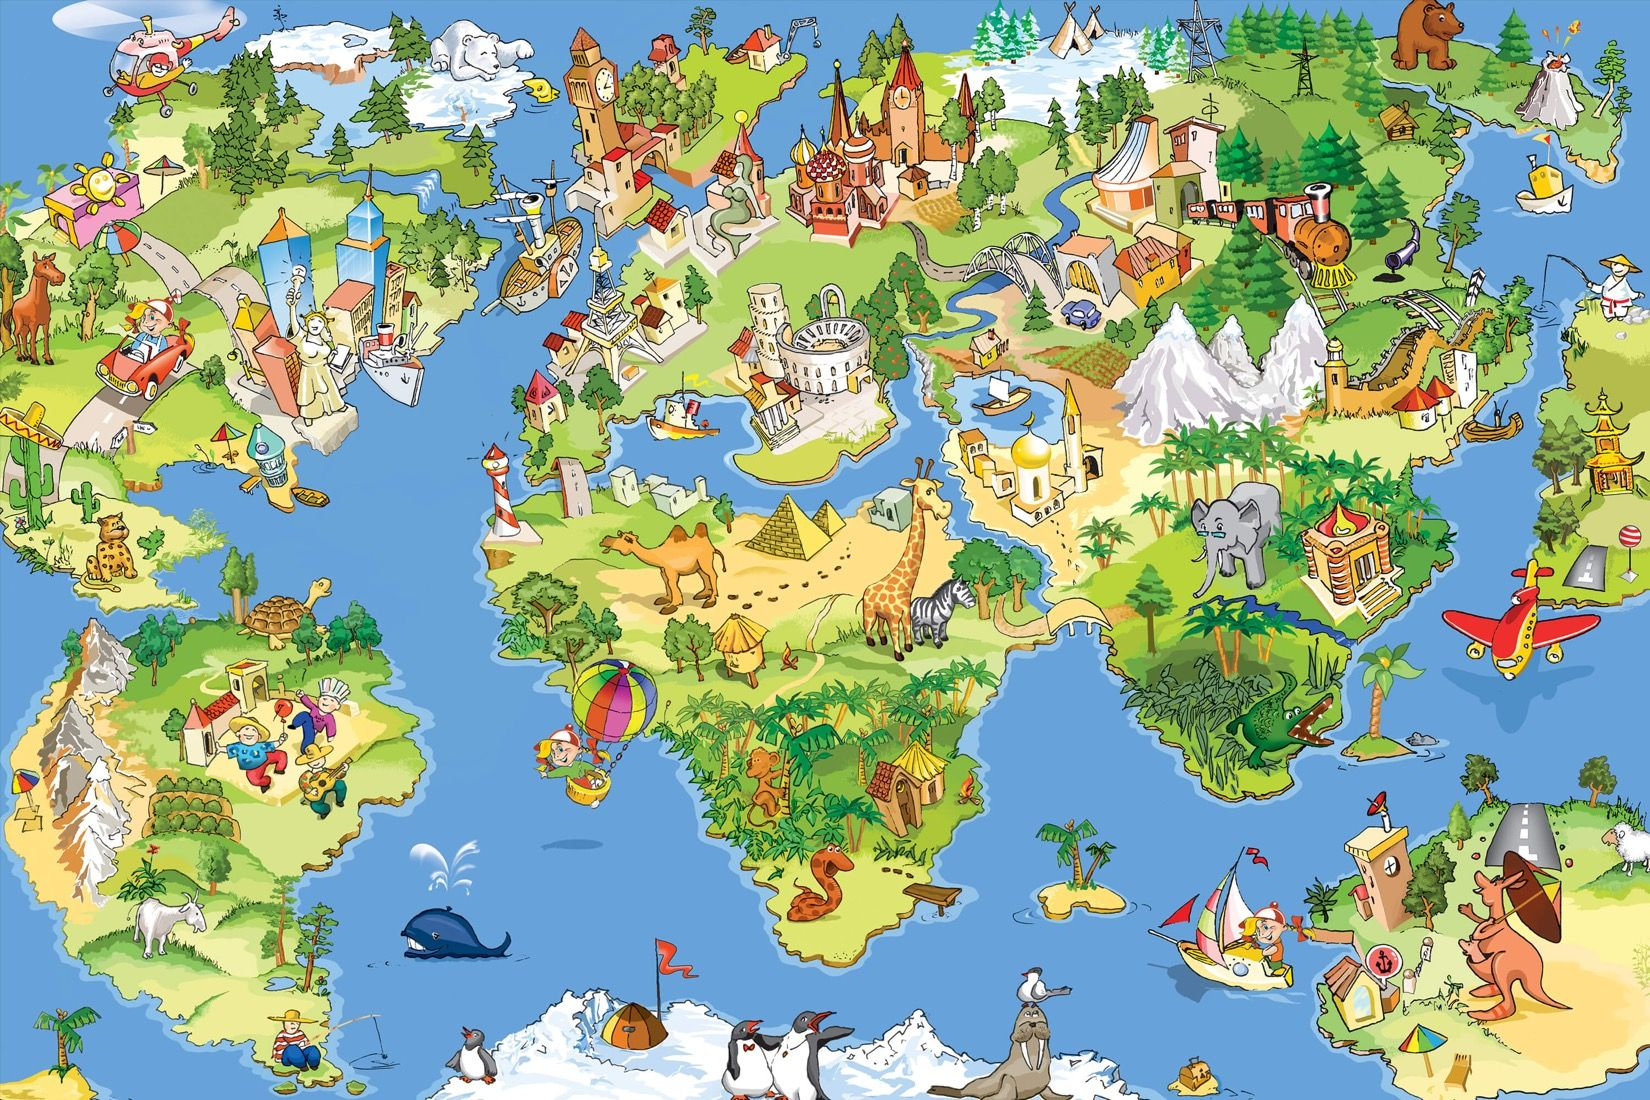 Animal map wallpaper wall mural muralswallpaper animal map wallpaper mural custom made to suit your wall size by the uks no gumiabroncs Images